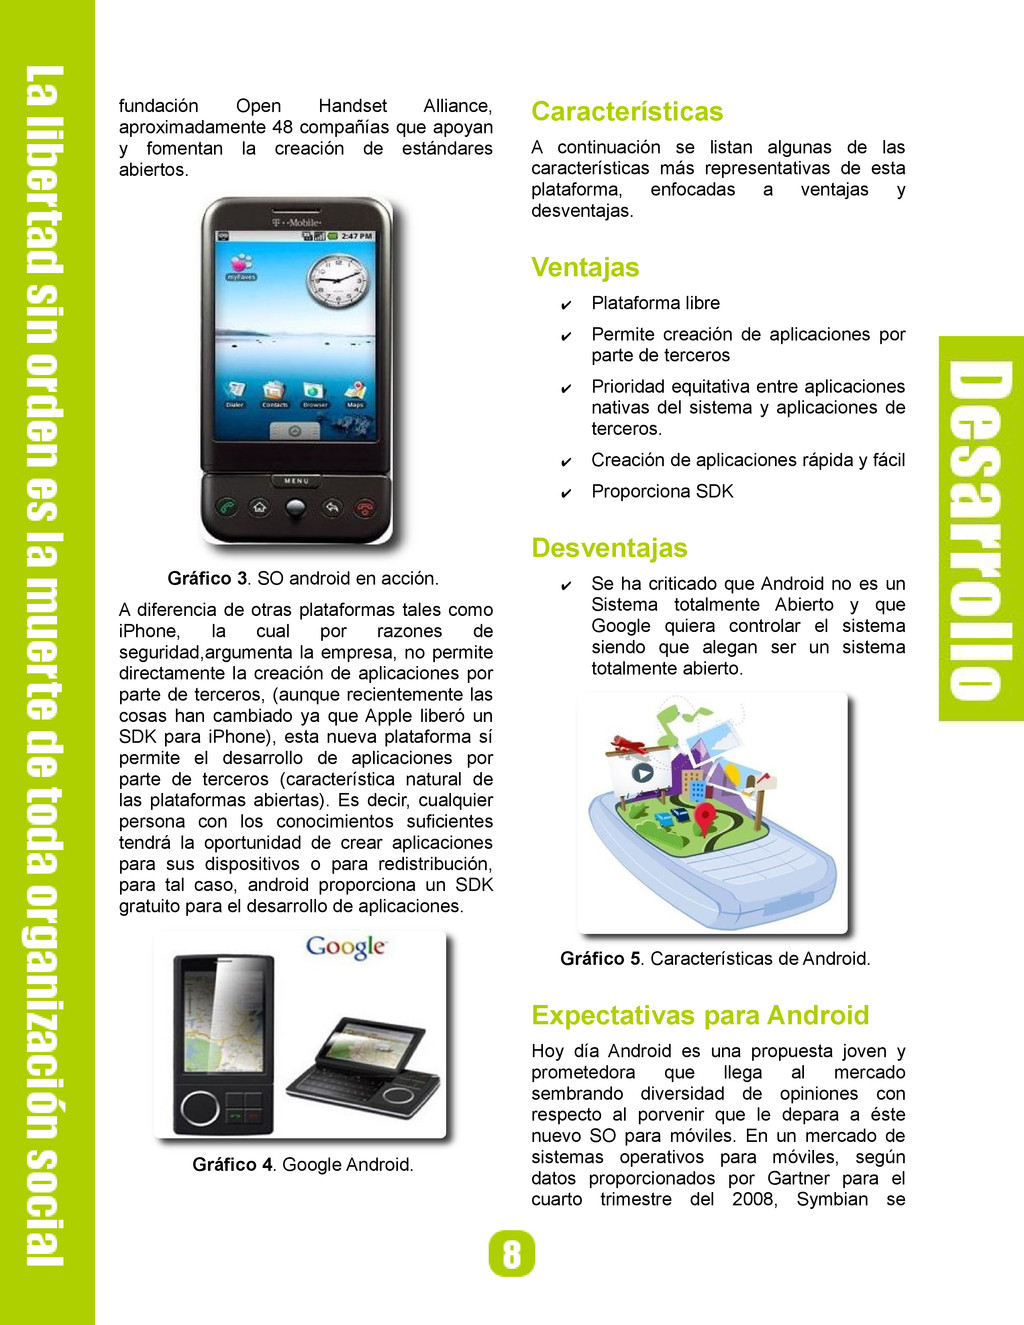 fundación Open Handset Alliance, aproximadament...